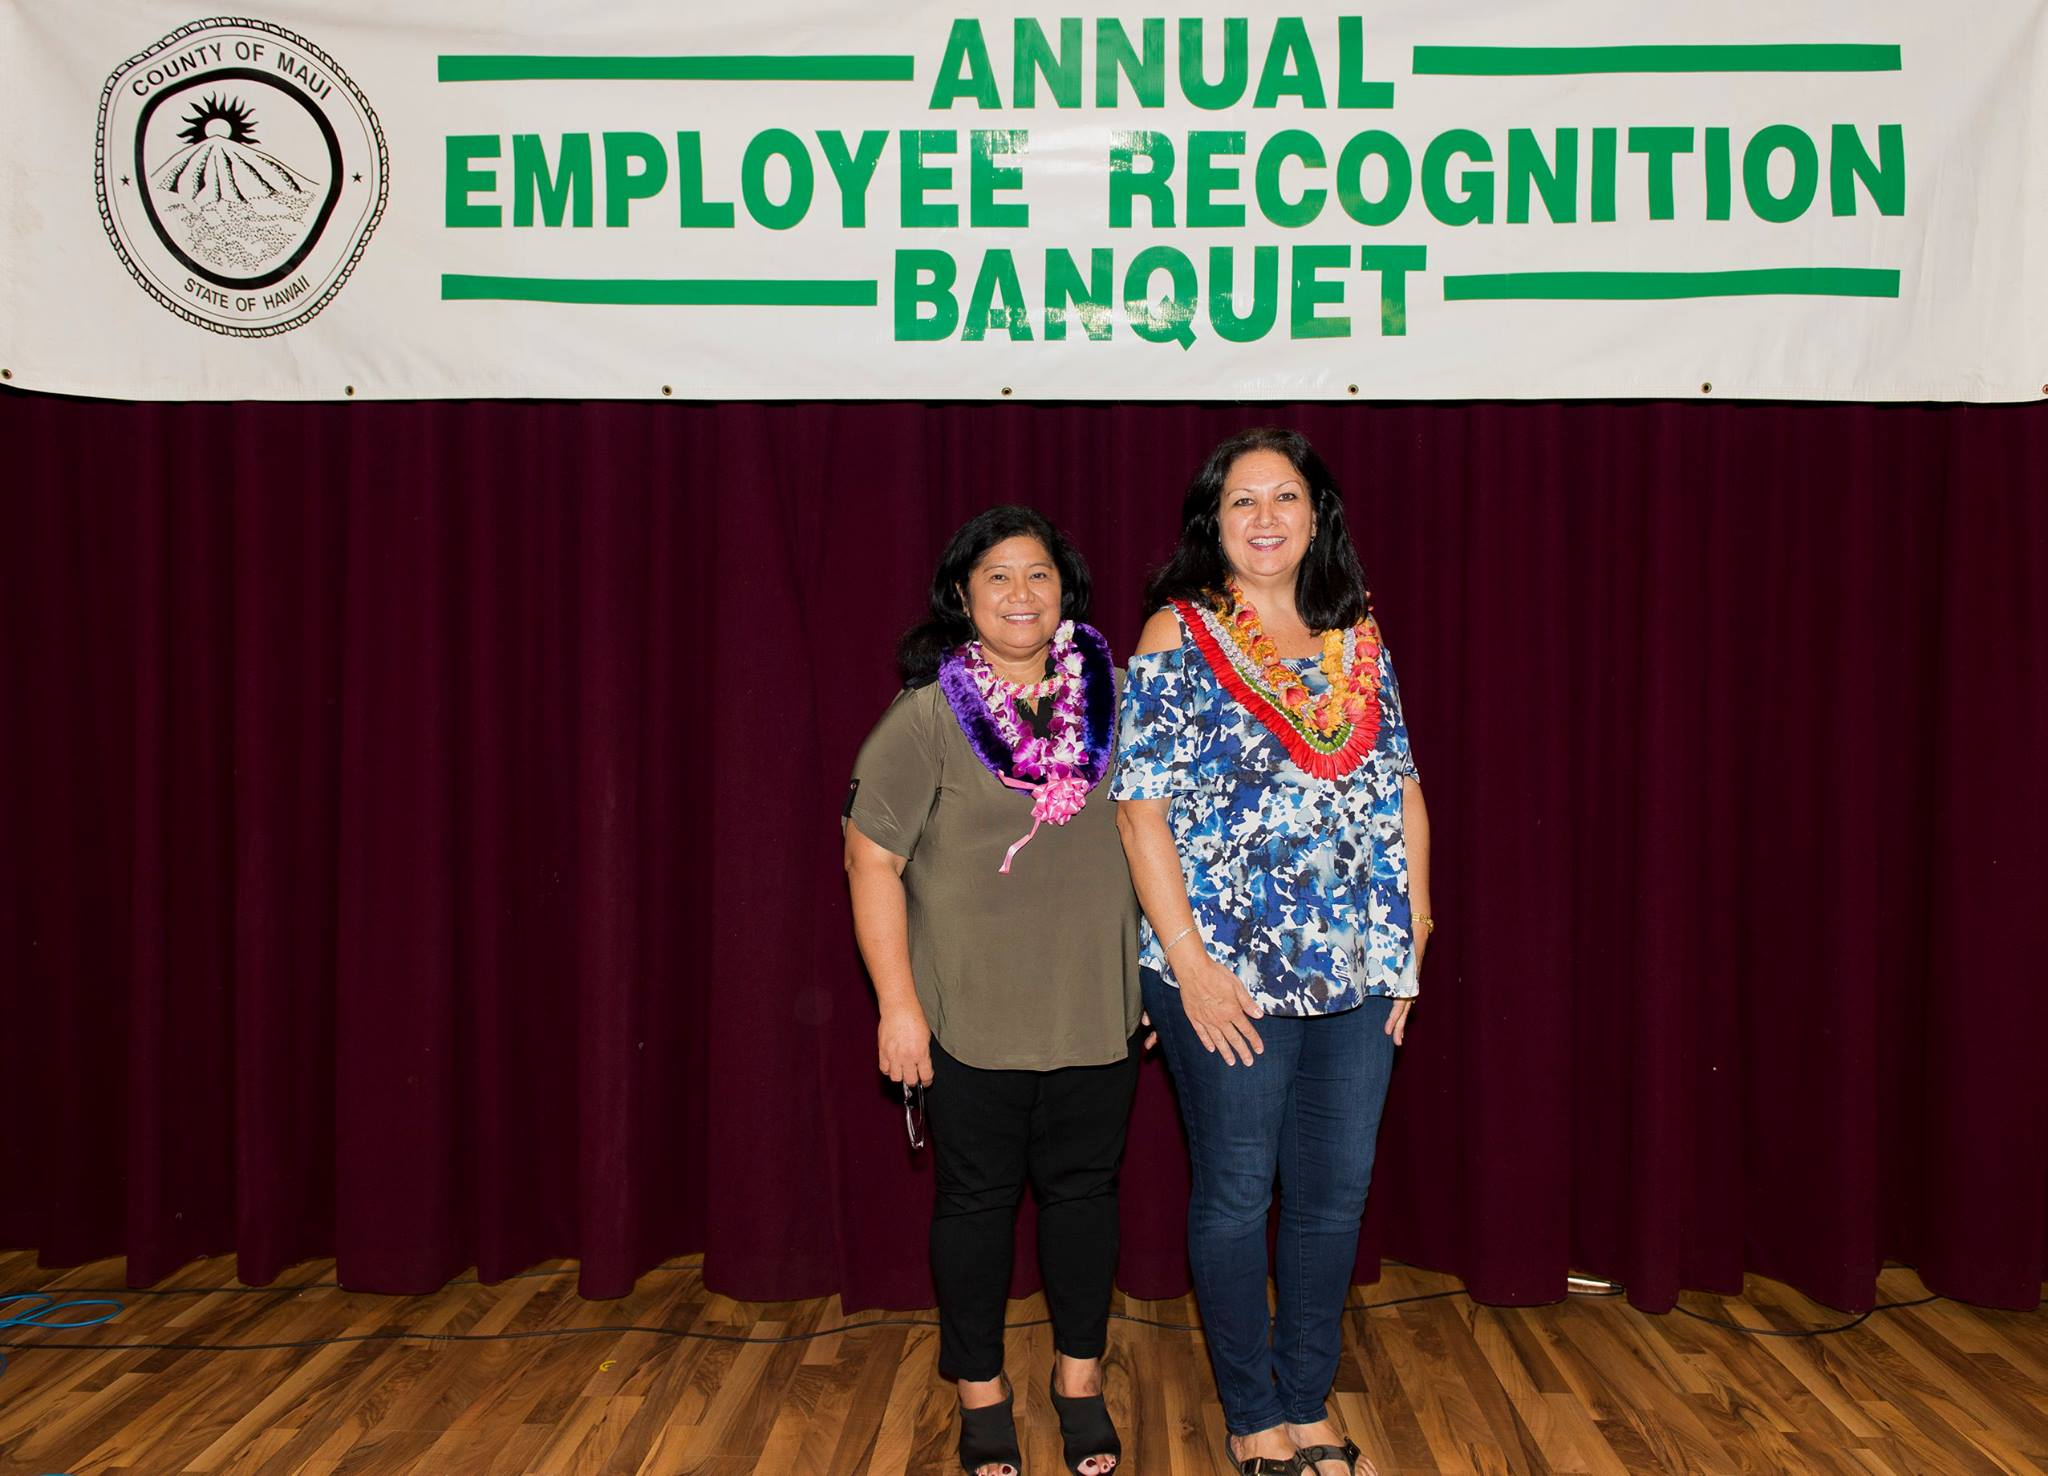 County of Maui Employee of the Year Laureen Perreira.